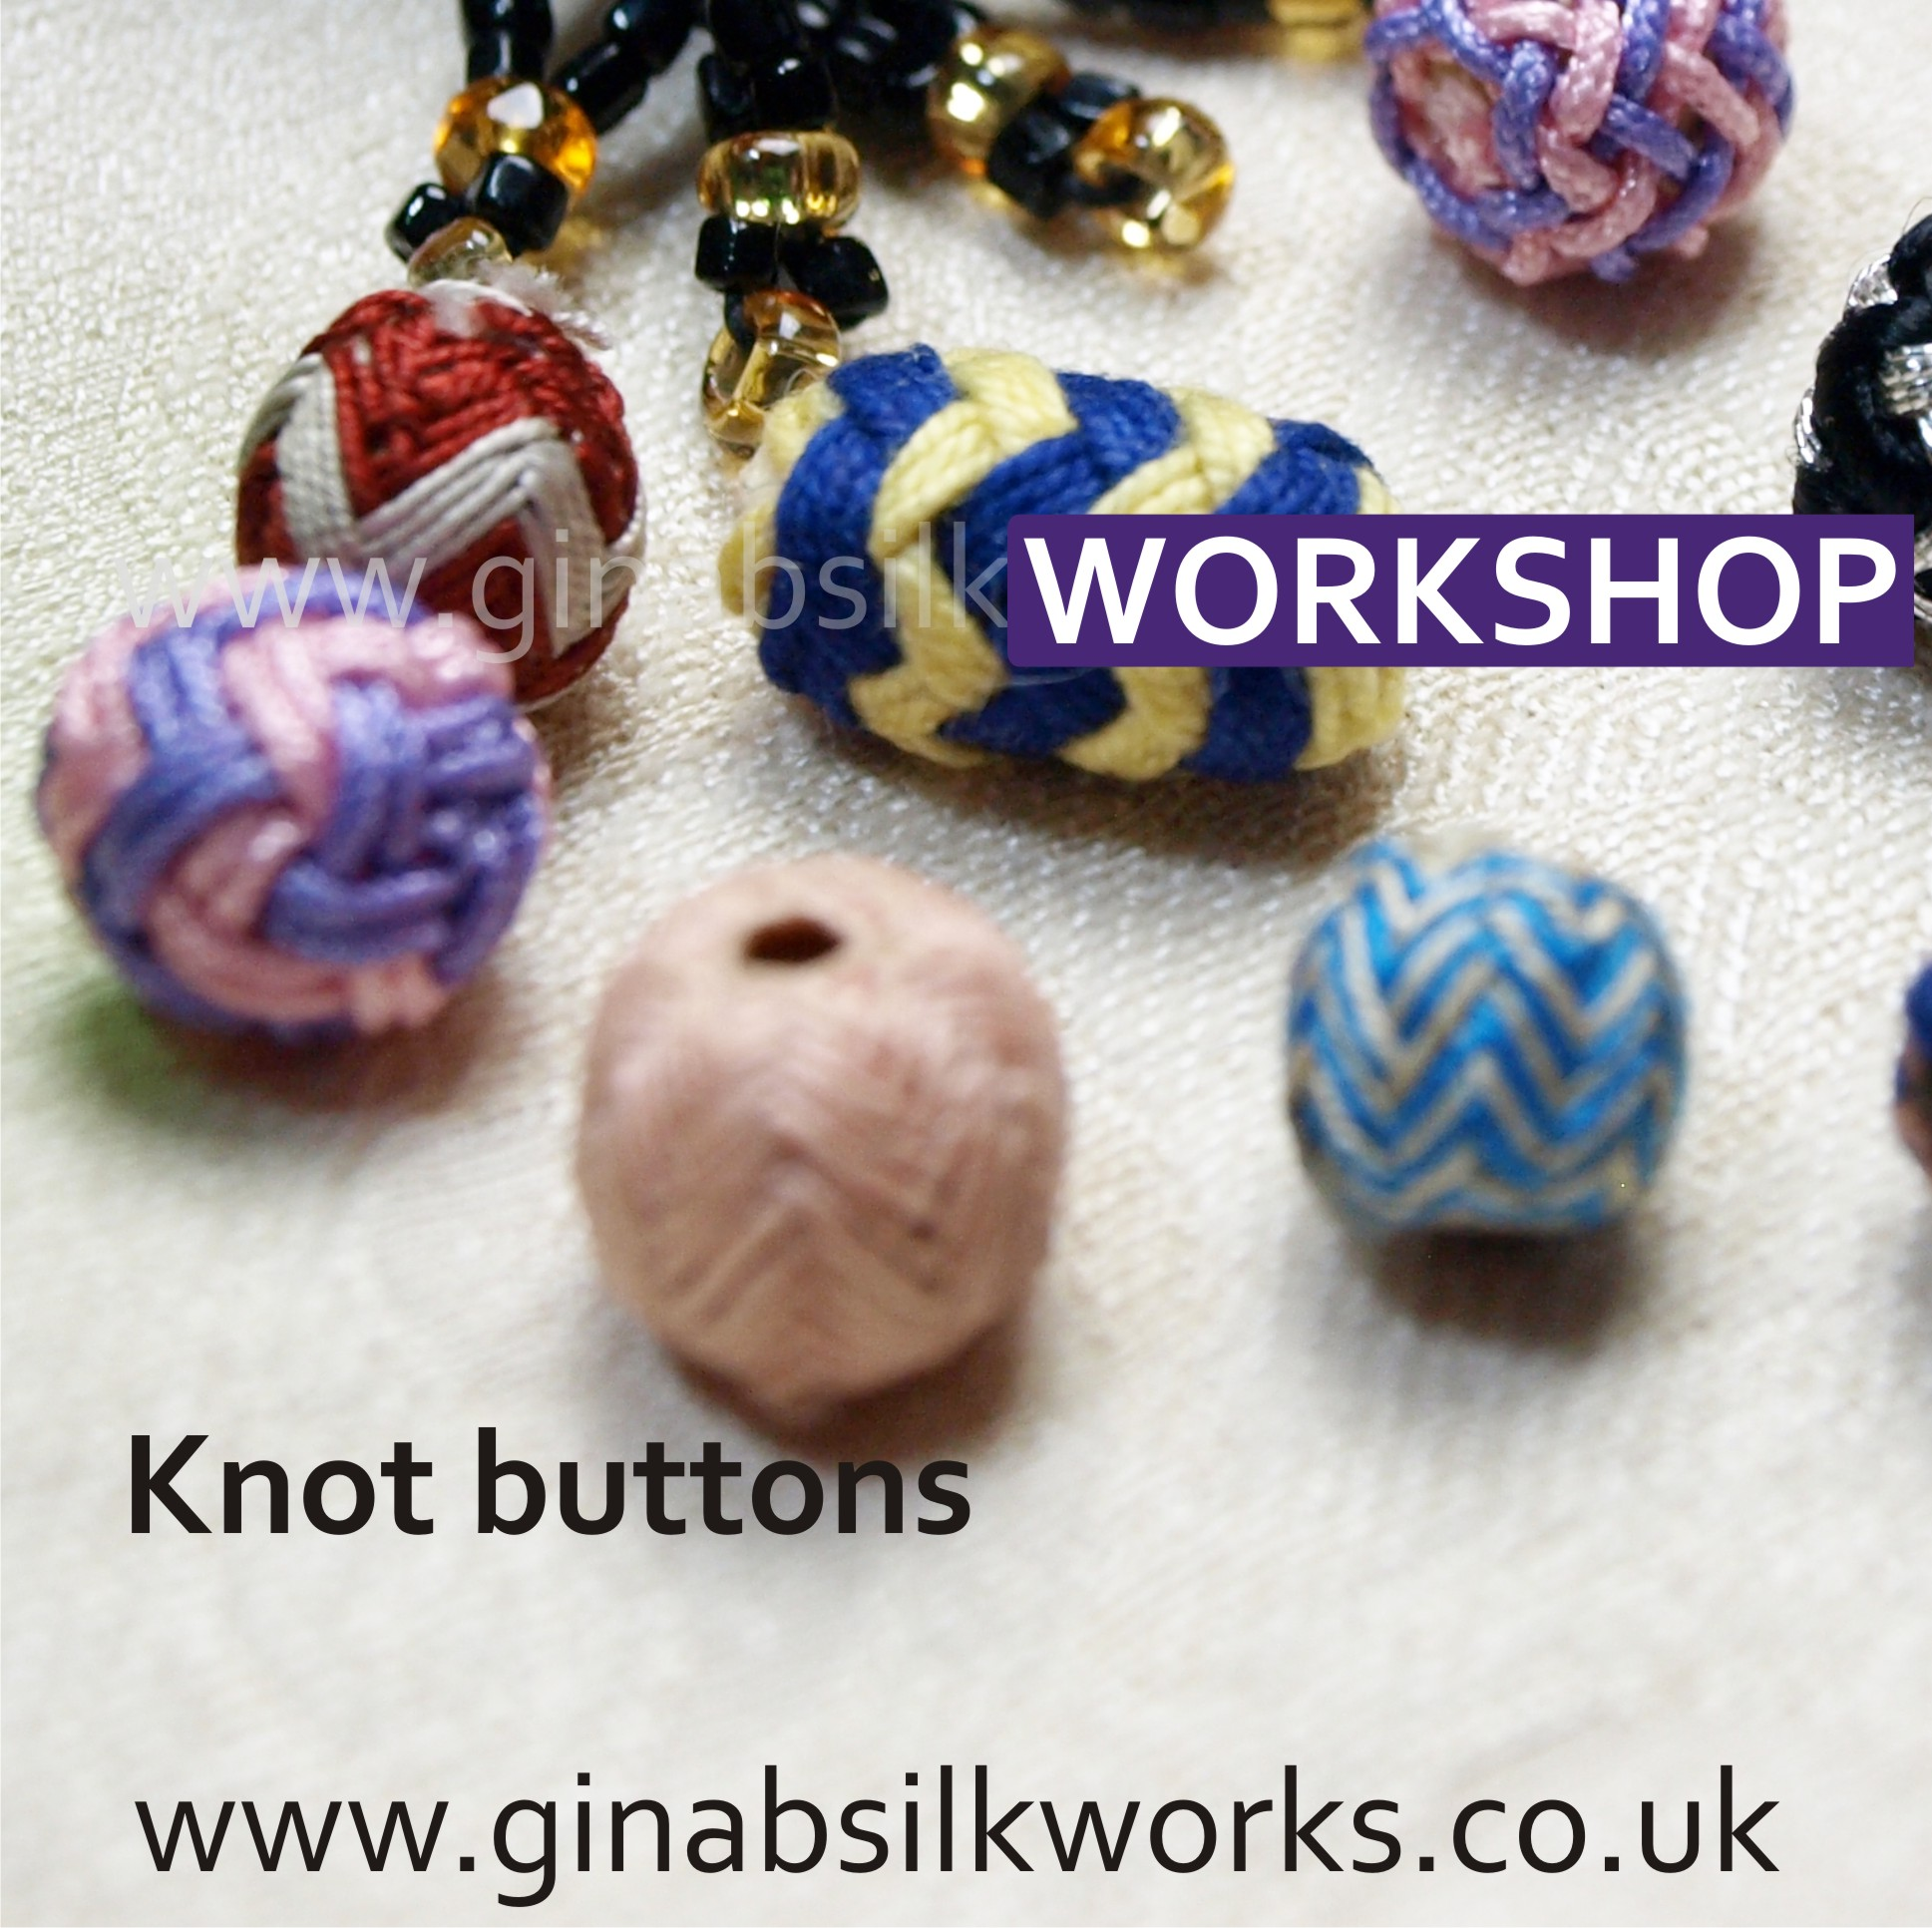 Knot Buttons Workshop